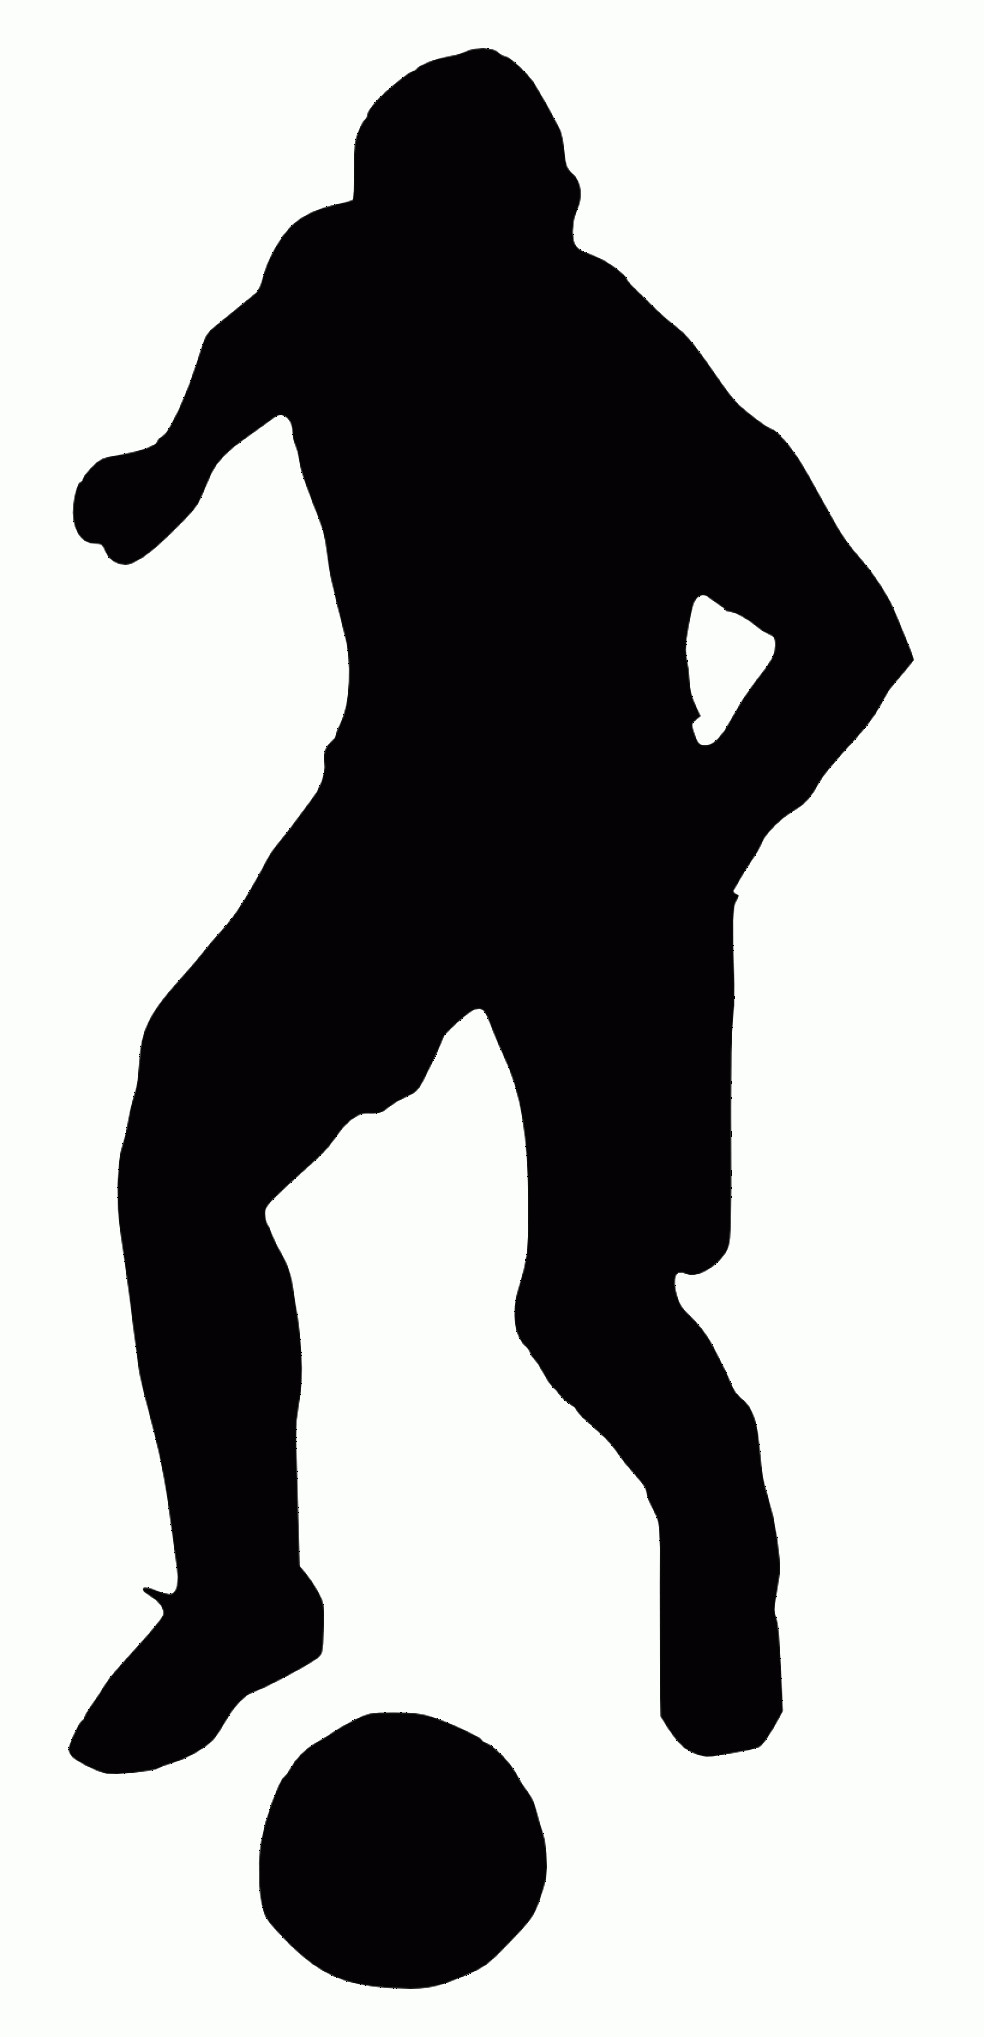 Football Laces Vector Silhouette: Uqwouqyrfree Png Football Player Silhouette Png Images Transparent